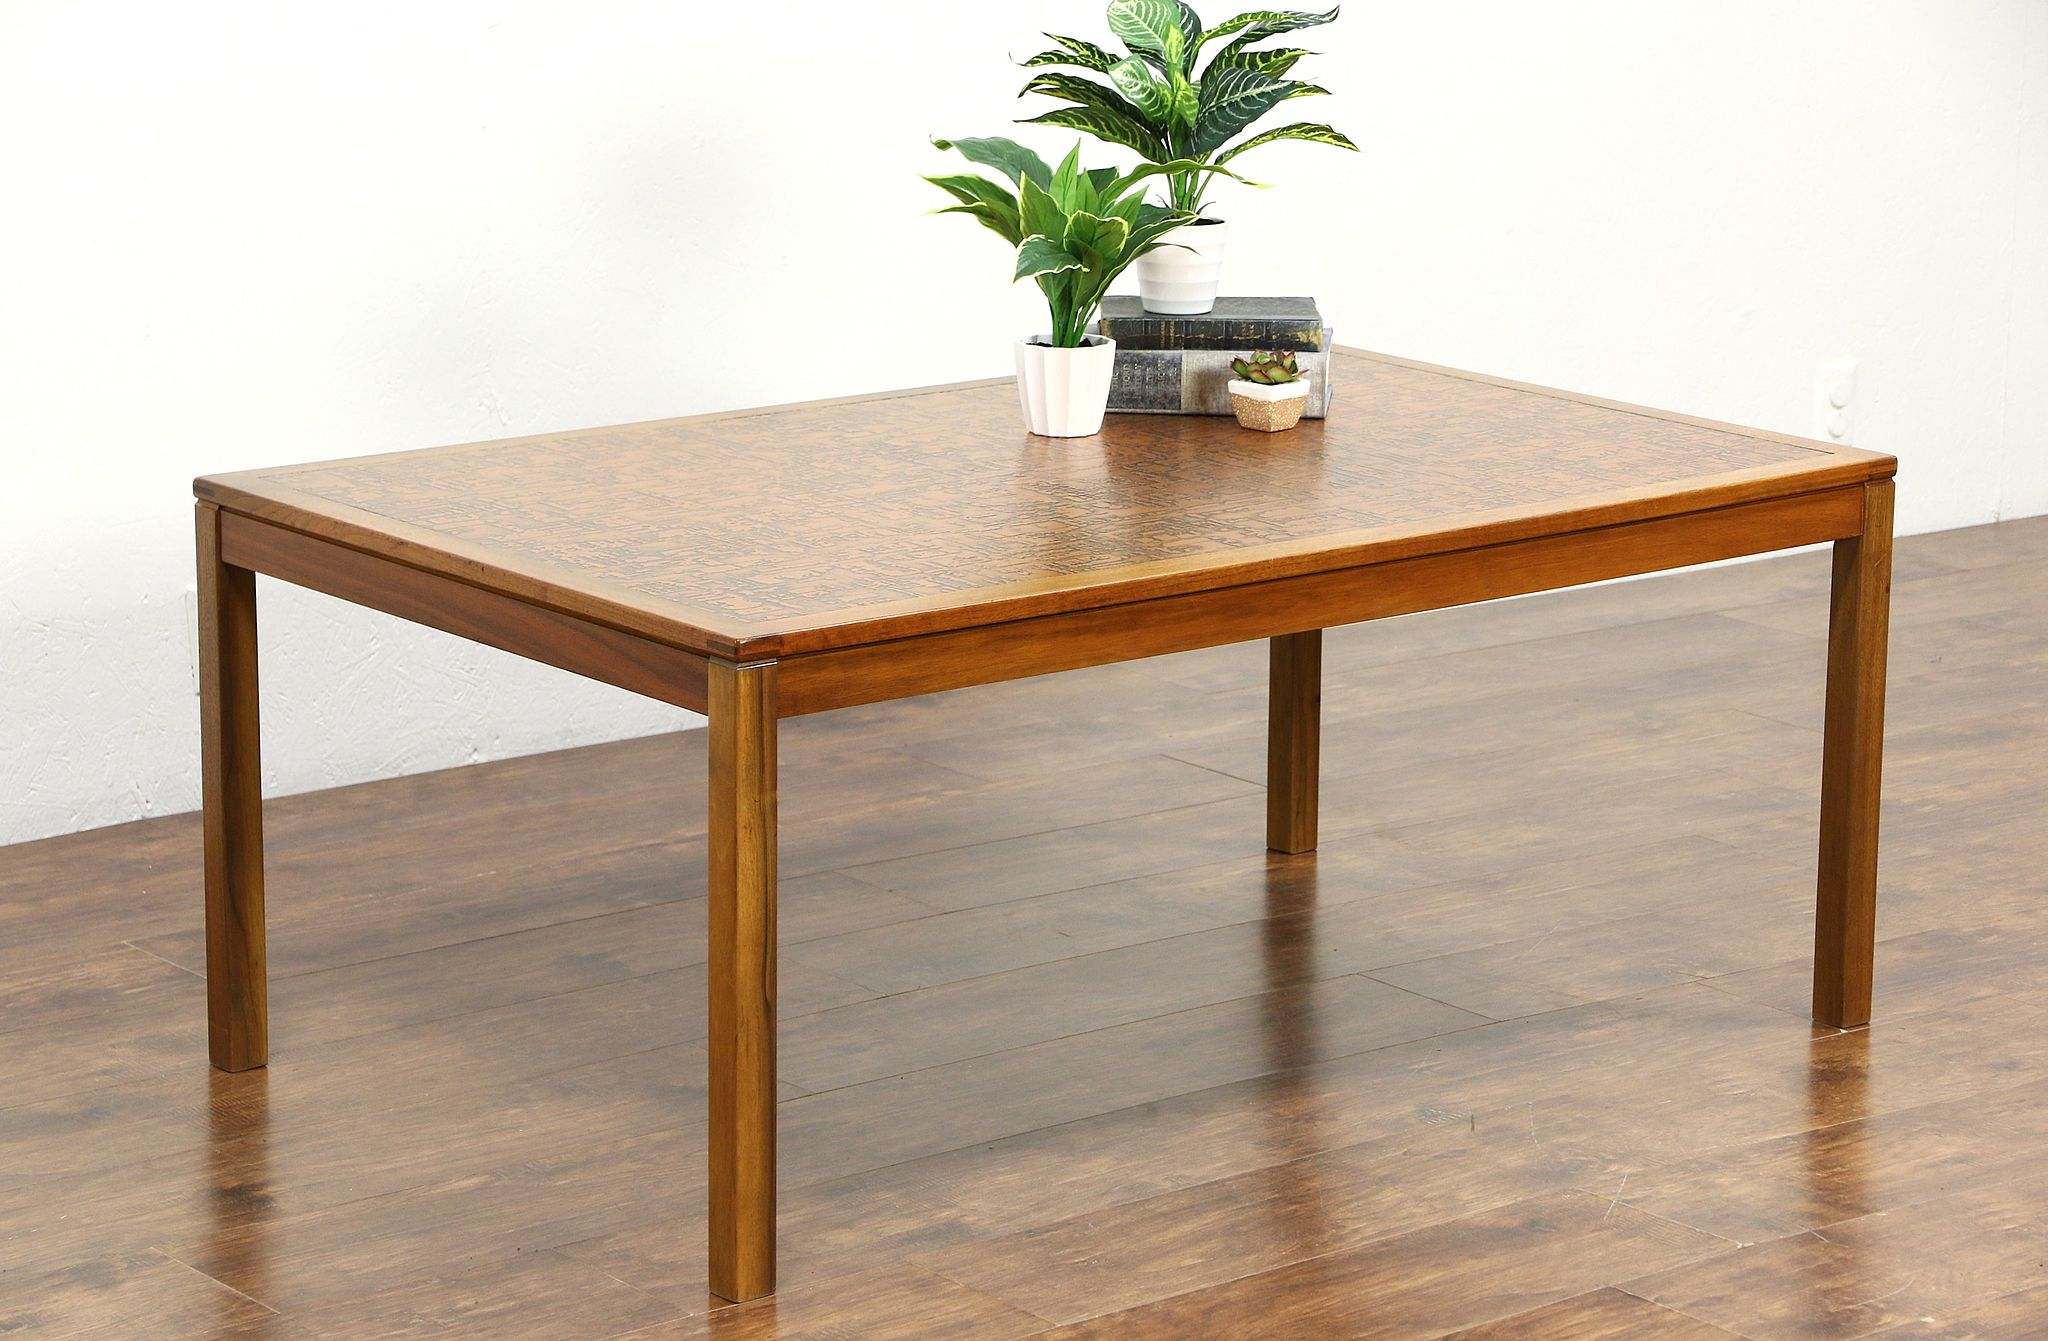 Midcentury Danish Modern Copper Top 1960s Vintage Teak Coffee